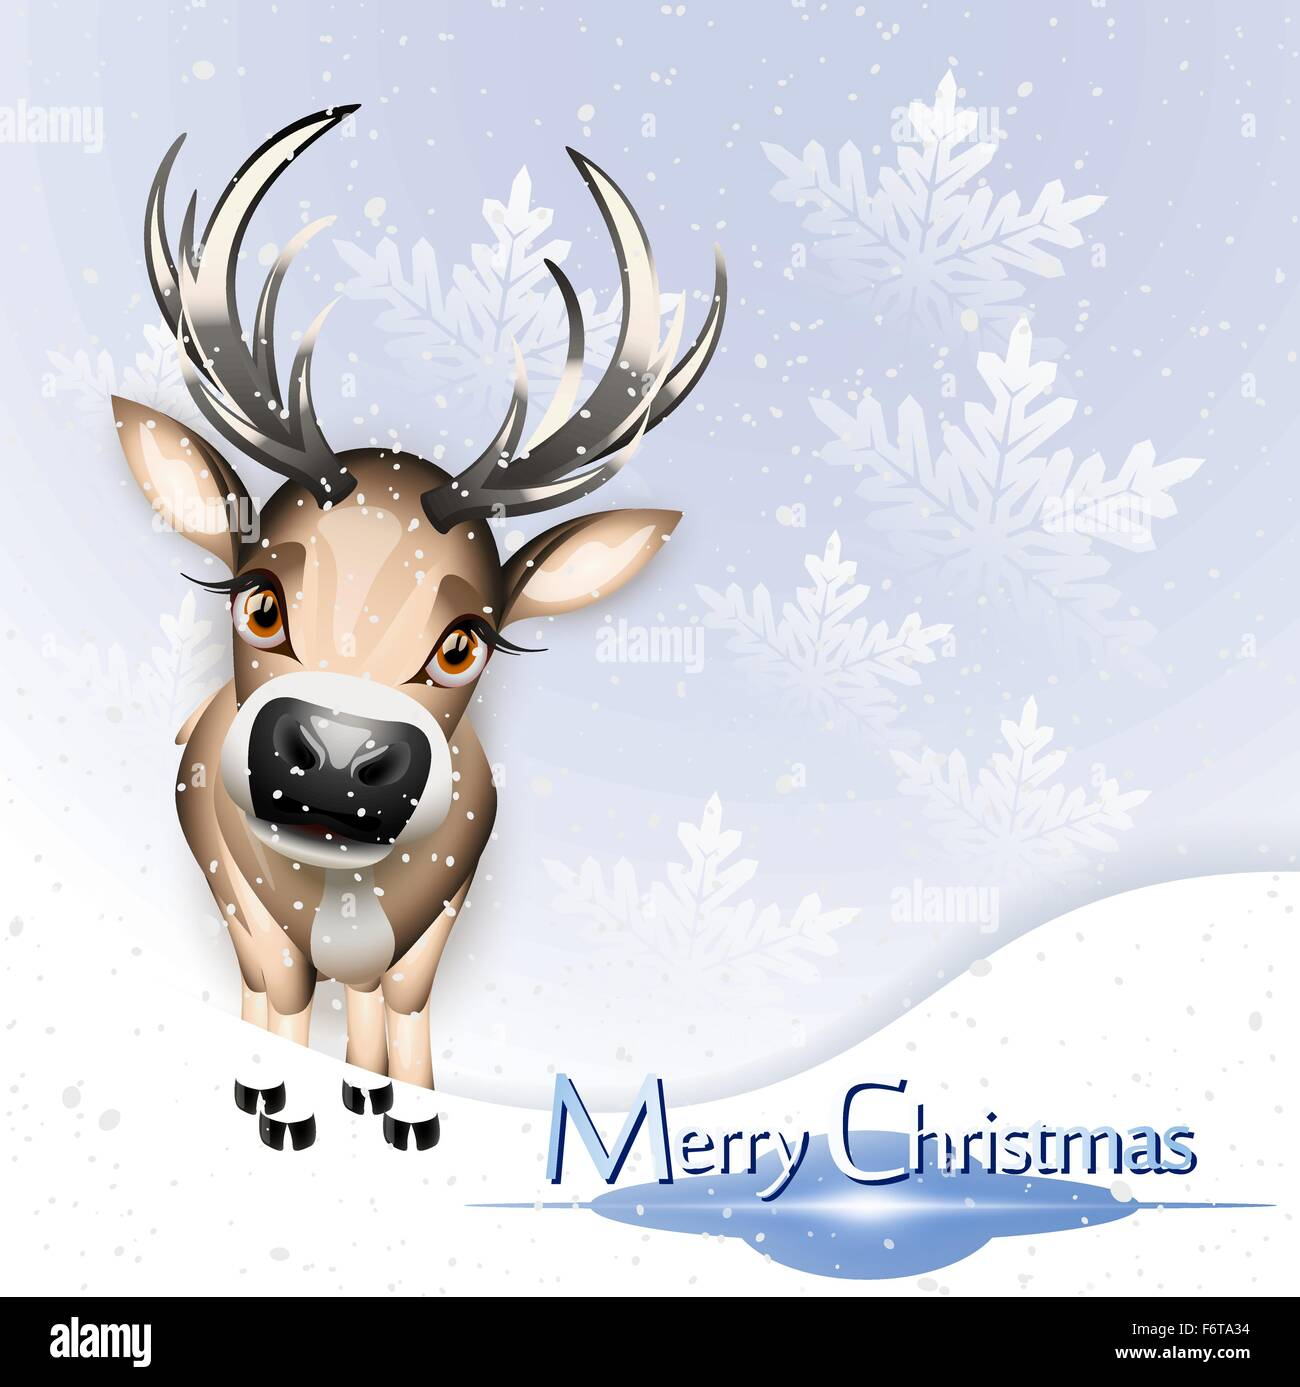 Christmas blue card with cute reindeer over snow - Stock Image